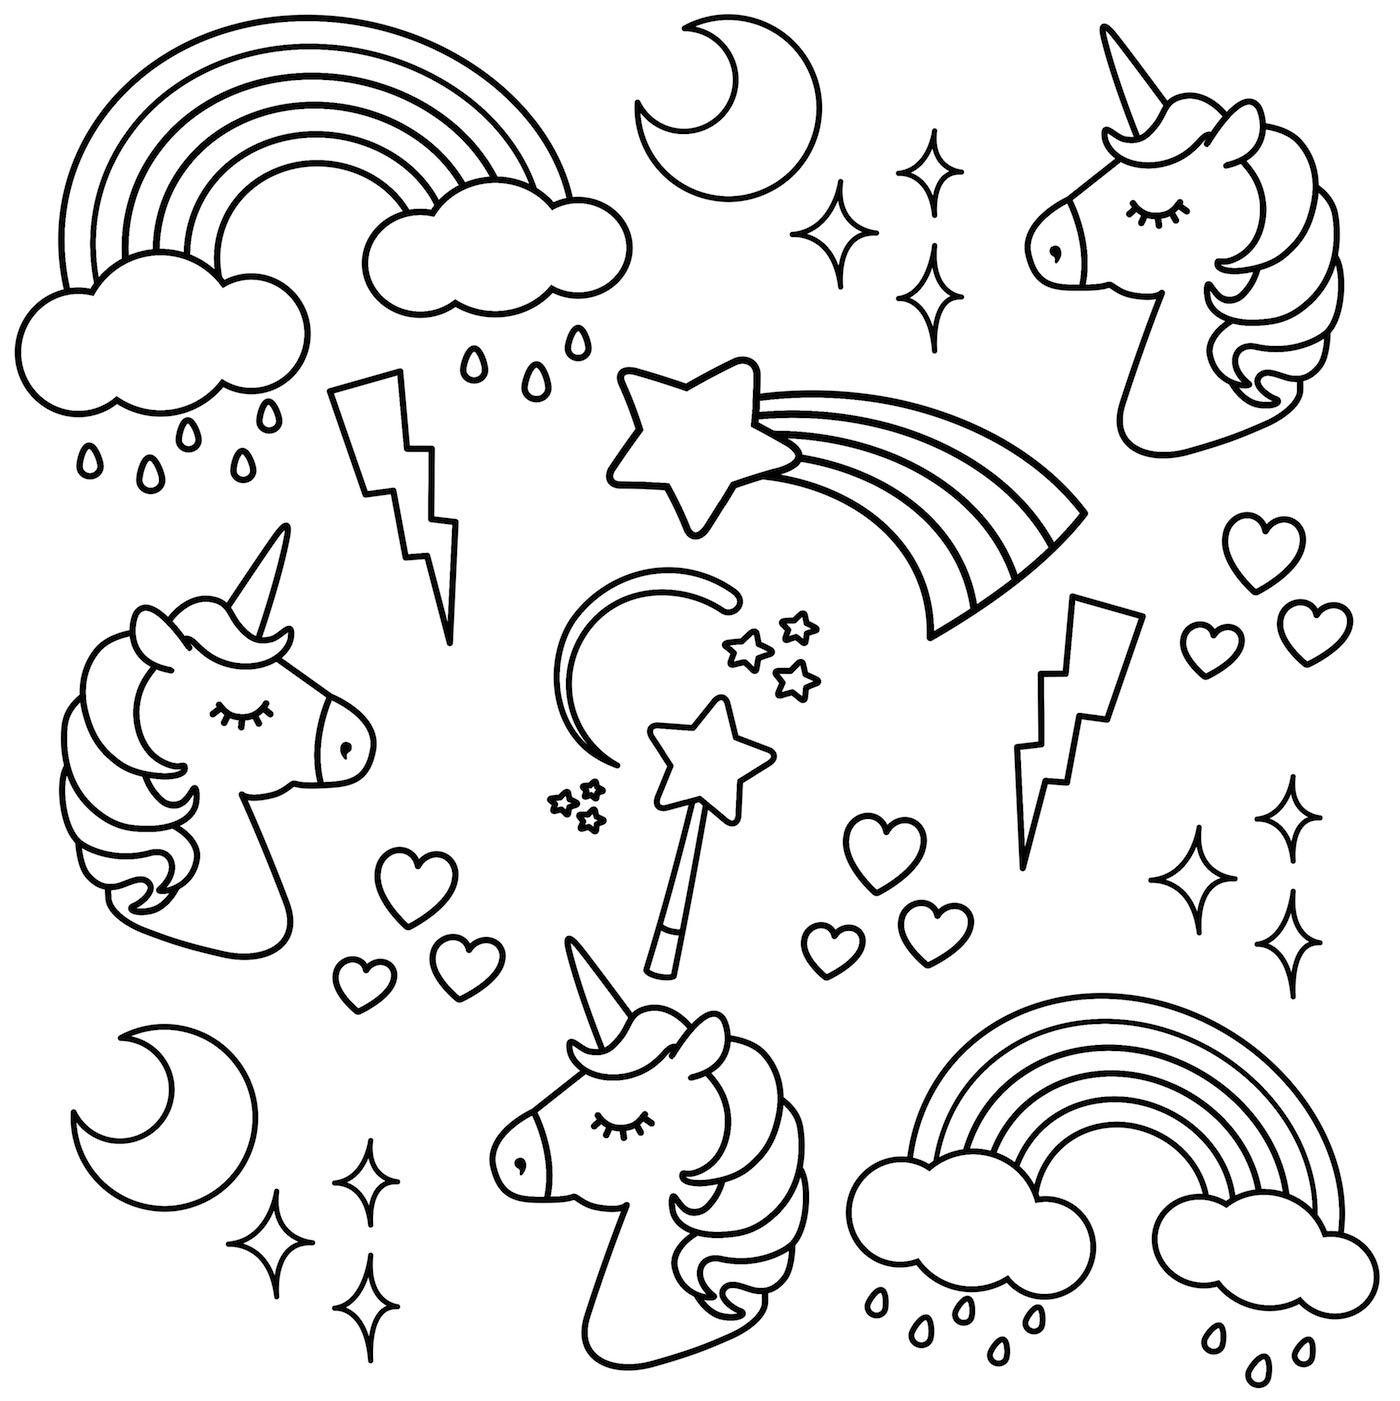 coloring picture unicorn unicorn coloring pages free learning printable picture coloring unicorn